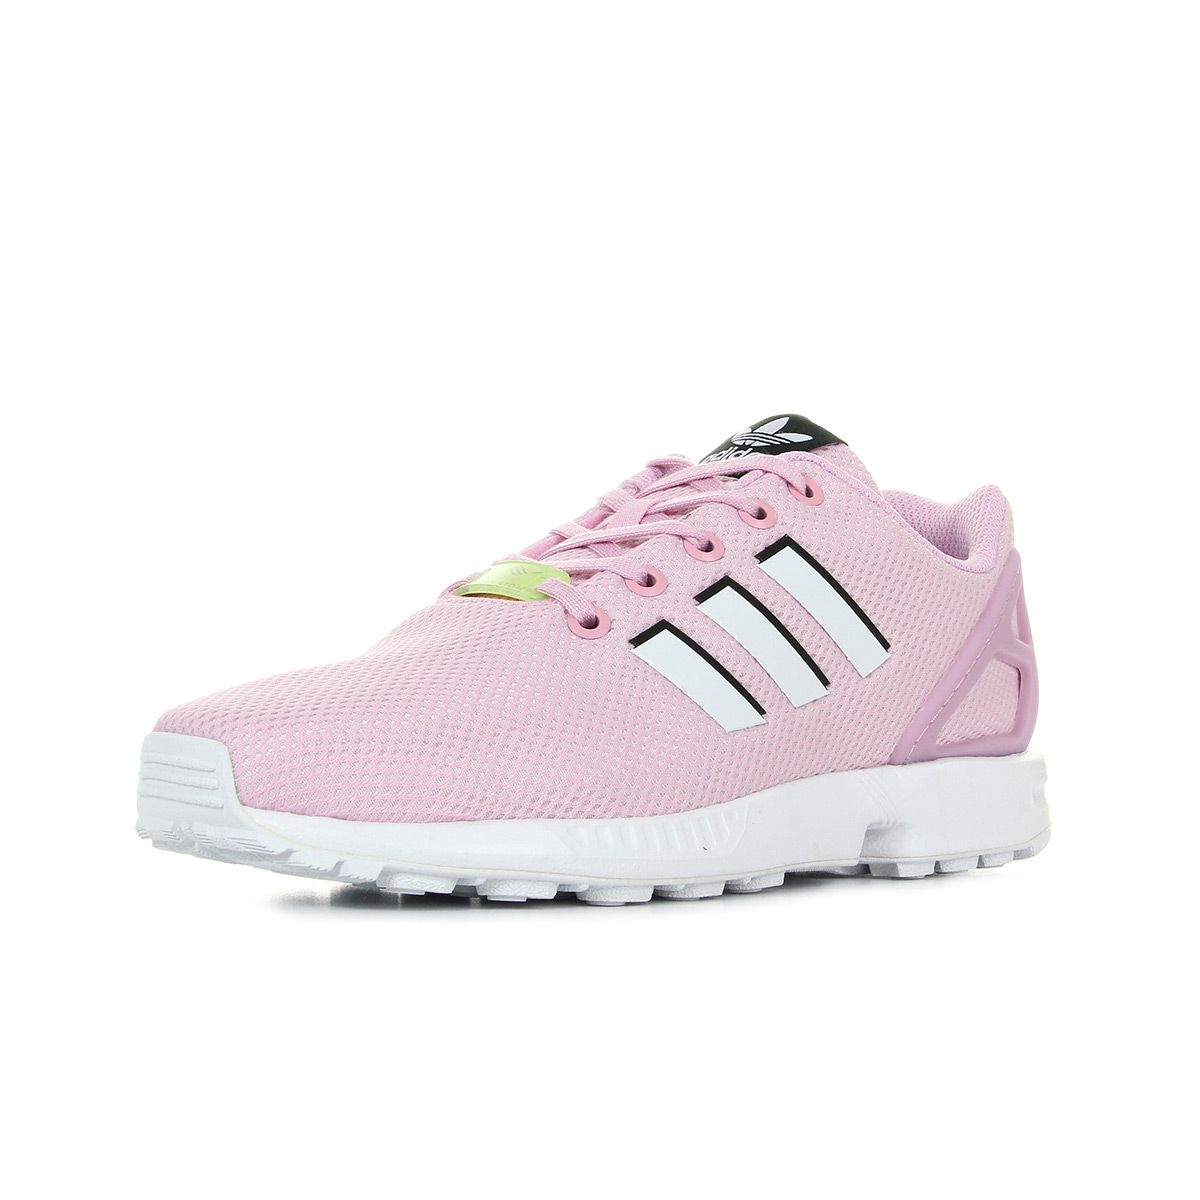 sports shoes 233cf 27b7c adidas zx flux rose pale